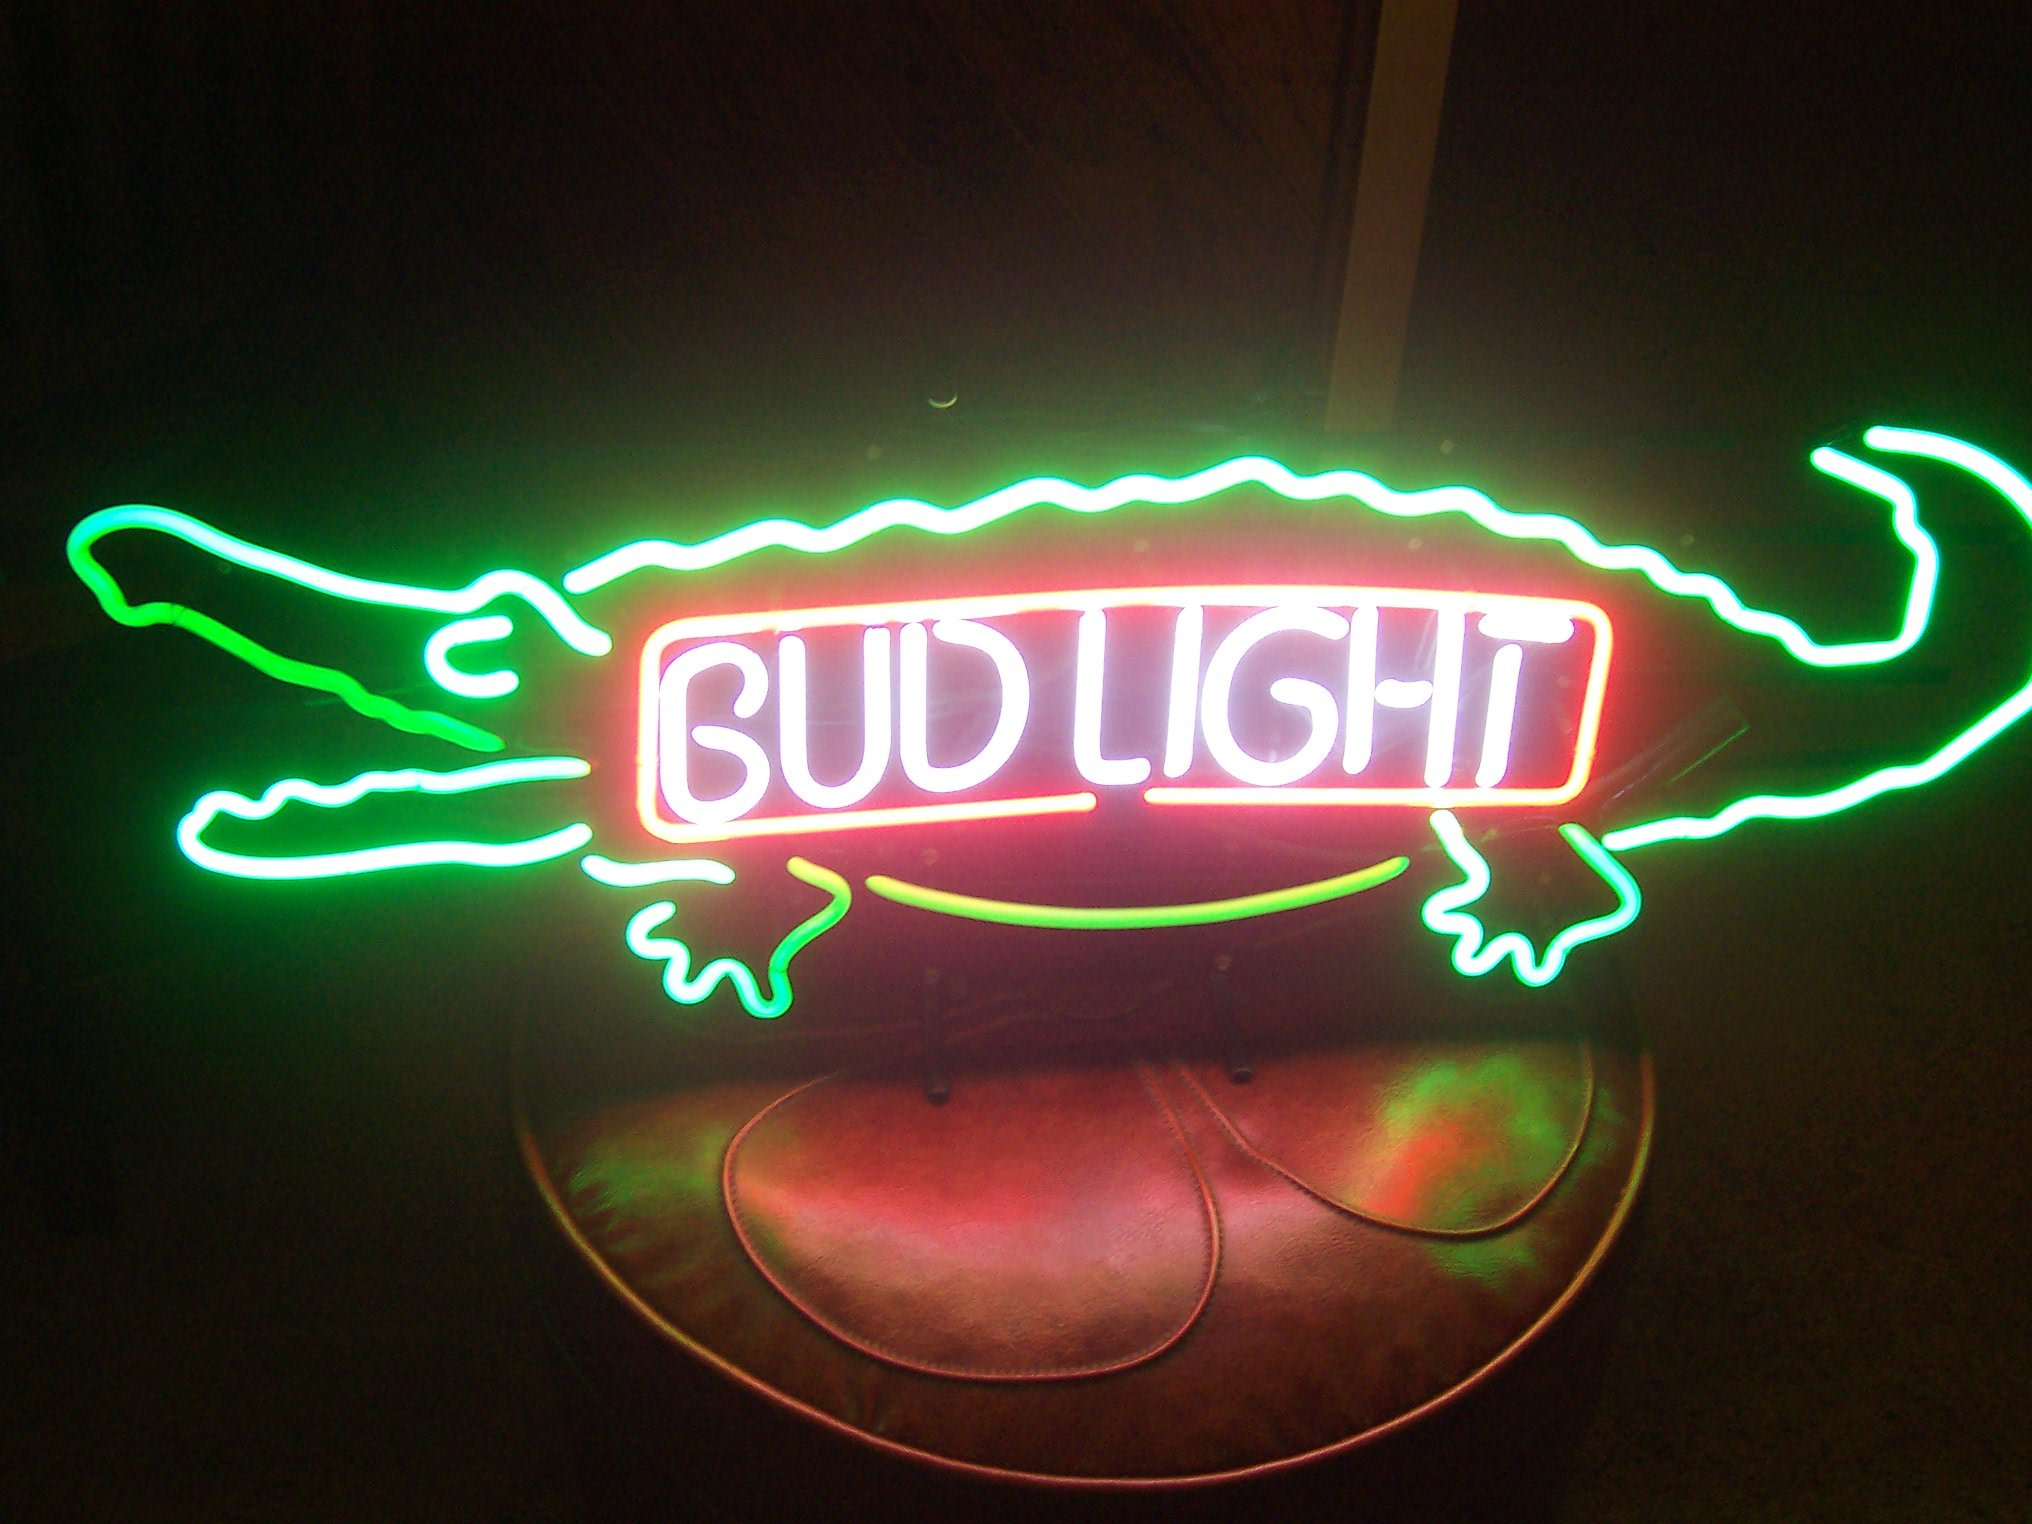 Desung New 20''x12'' B ud Light Alligator Gator Neon Sign (Multiple Sizes Available) Man Cave Signs Sports Bar Pub Beer Neon Lights Lamp Glass Neon Light CX225